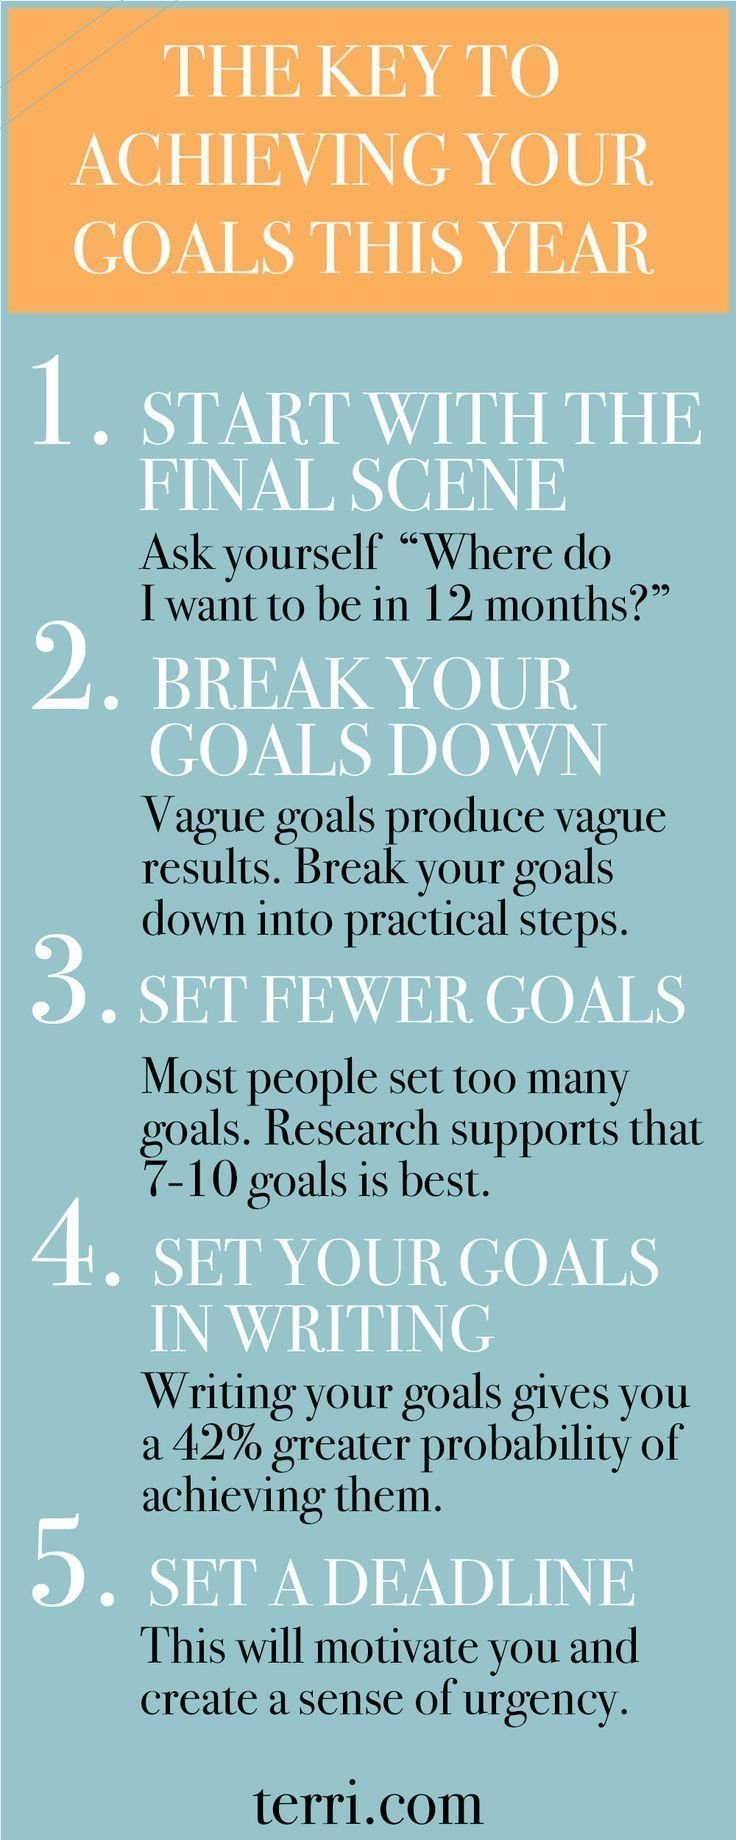 Here is the key to achieving your goals this year